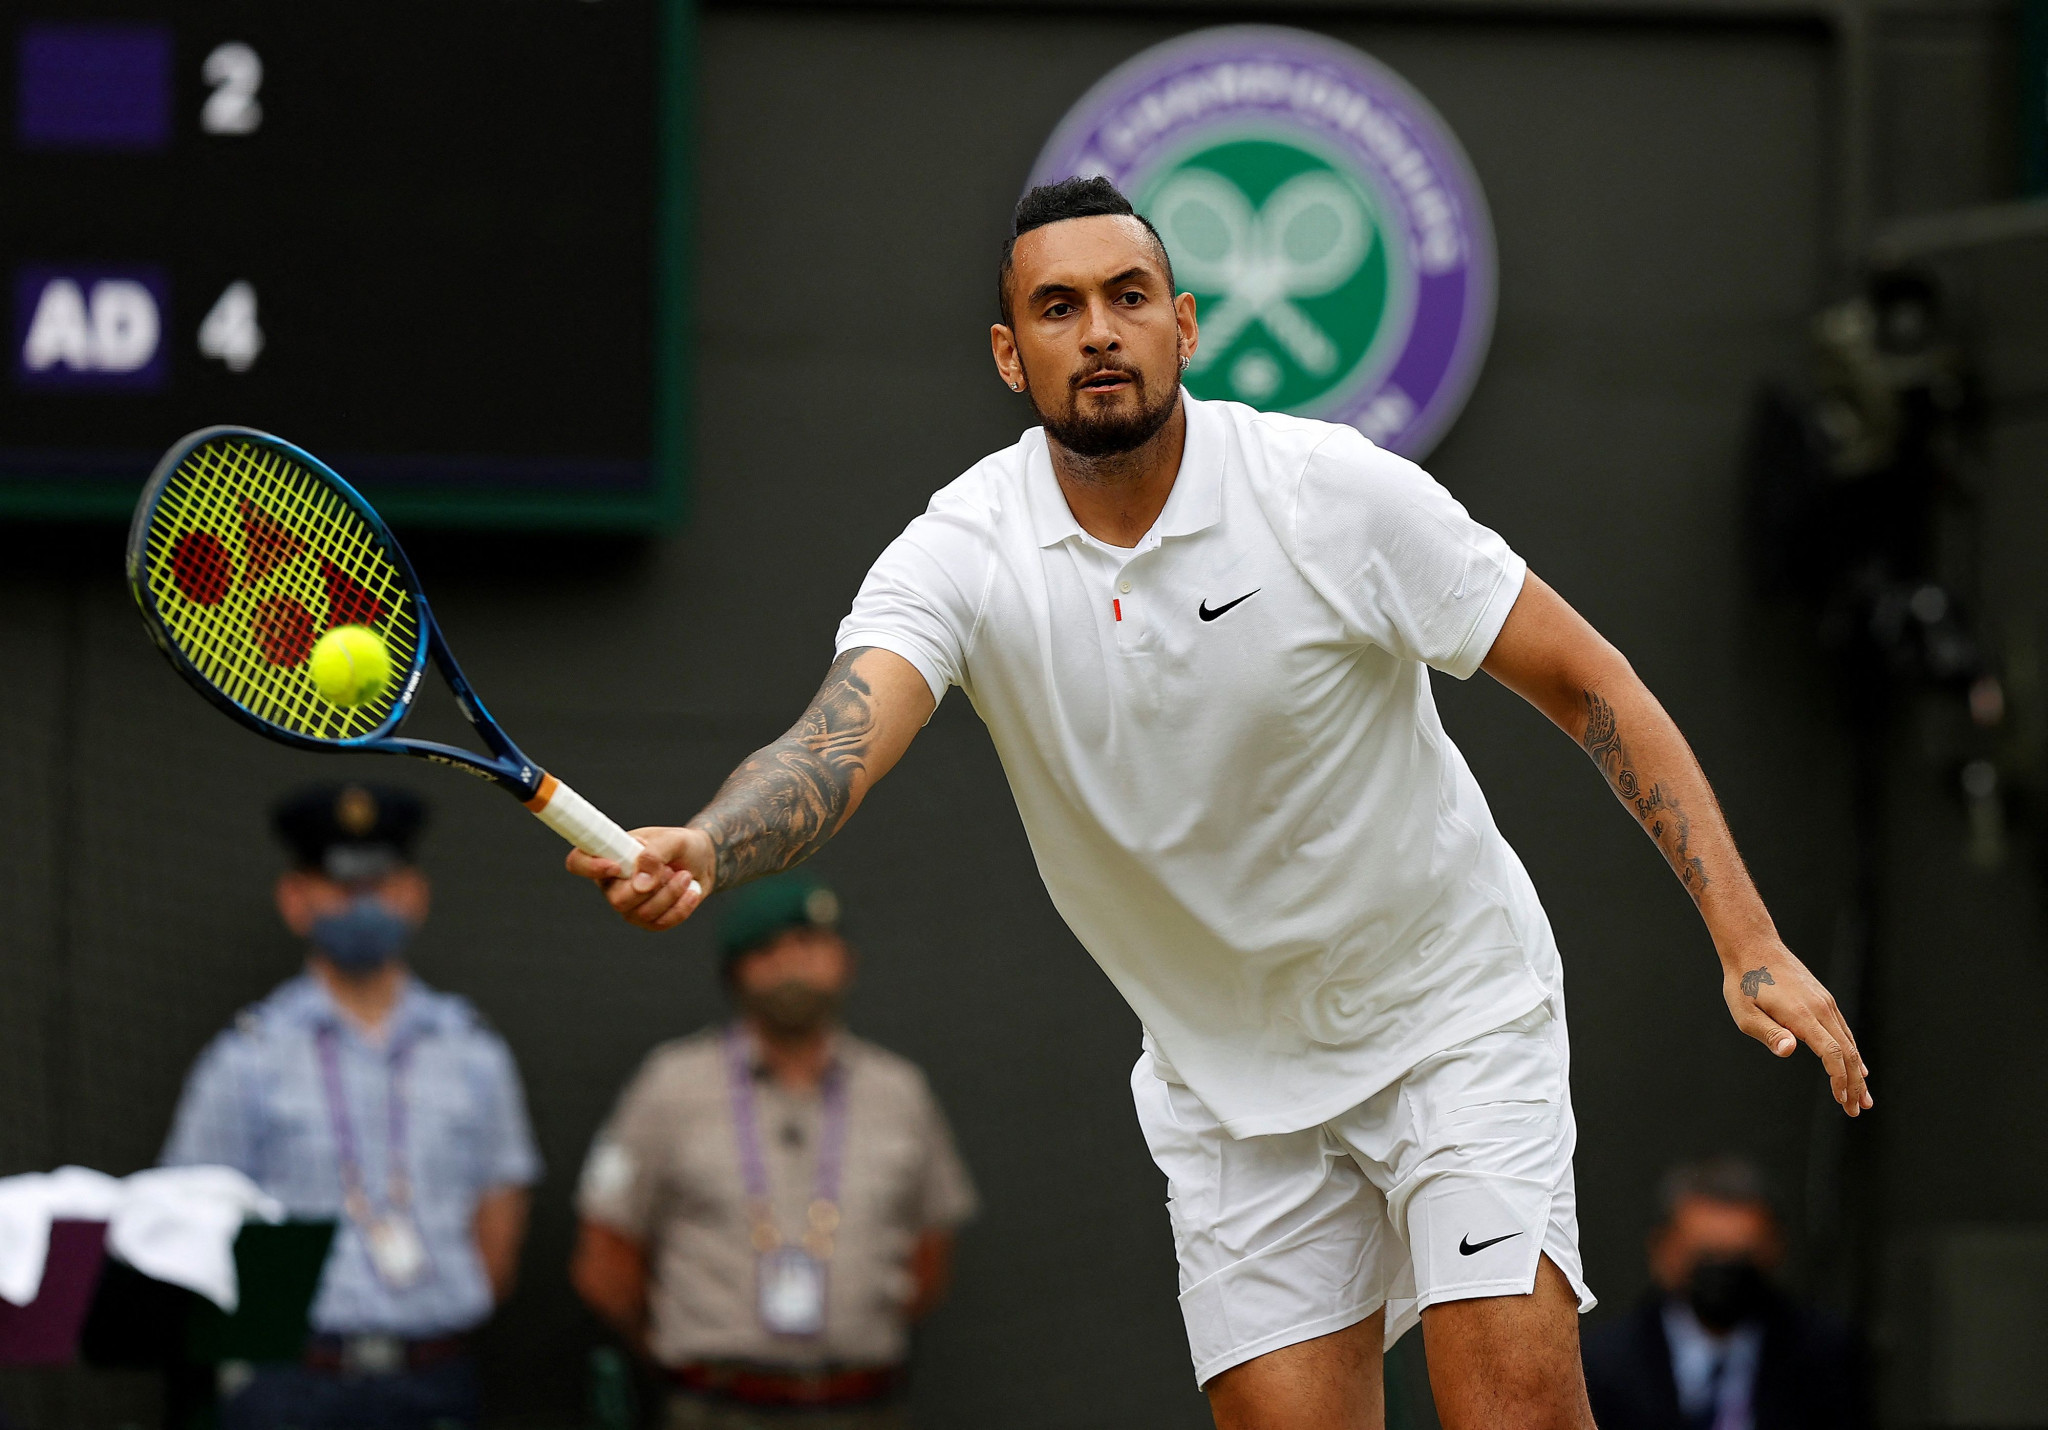 Kyrgios unsure over participation at Tokyo 2020 Olympics